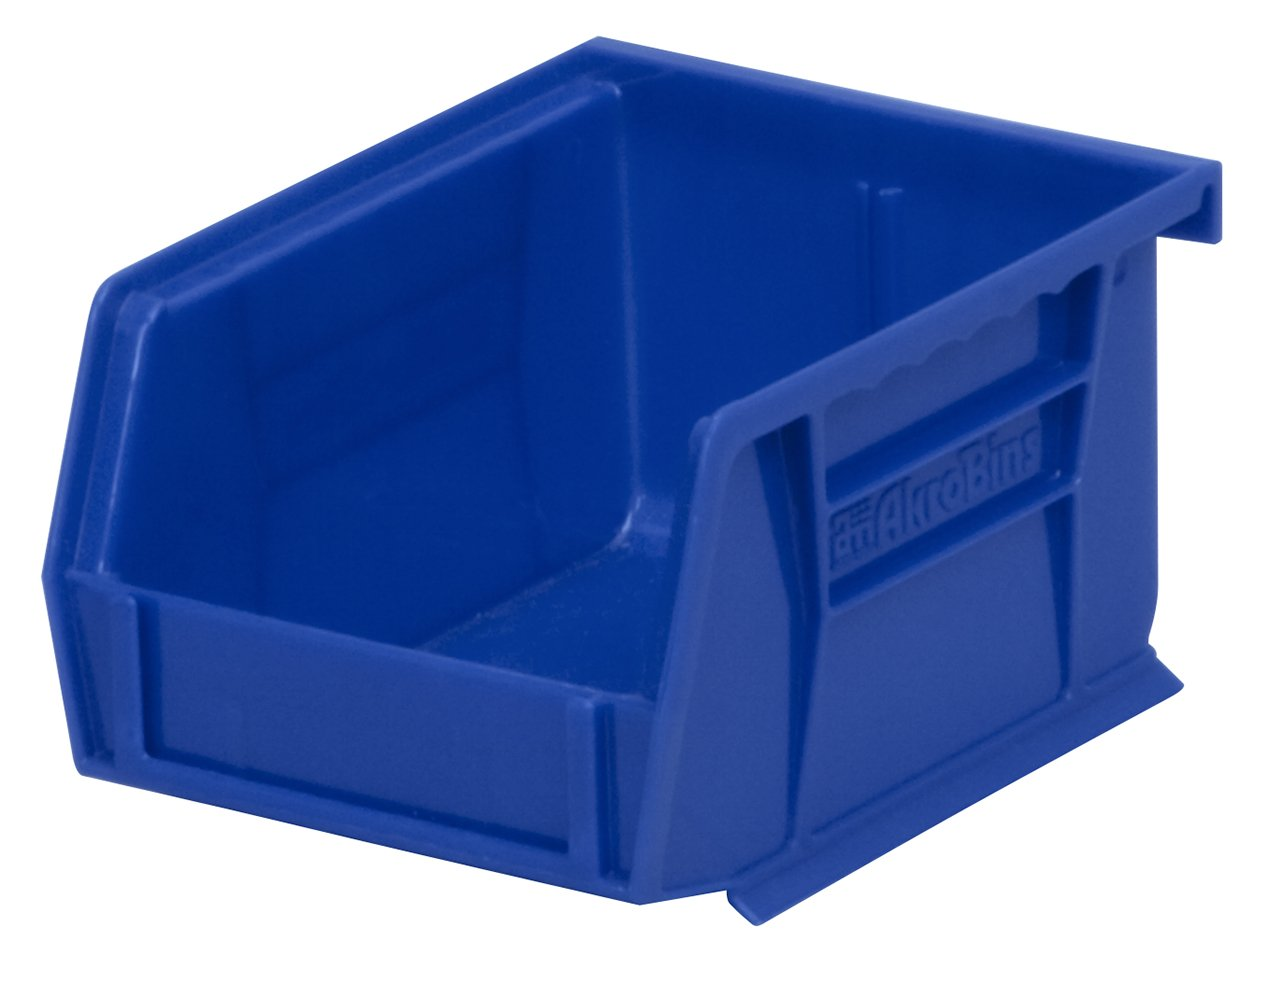 Akro-Mils 30210 Plastic Storage Stacking Hanging Akro Bin, 5-Inch by 4-Inch by 3-Inch, Blue, Case of 24